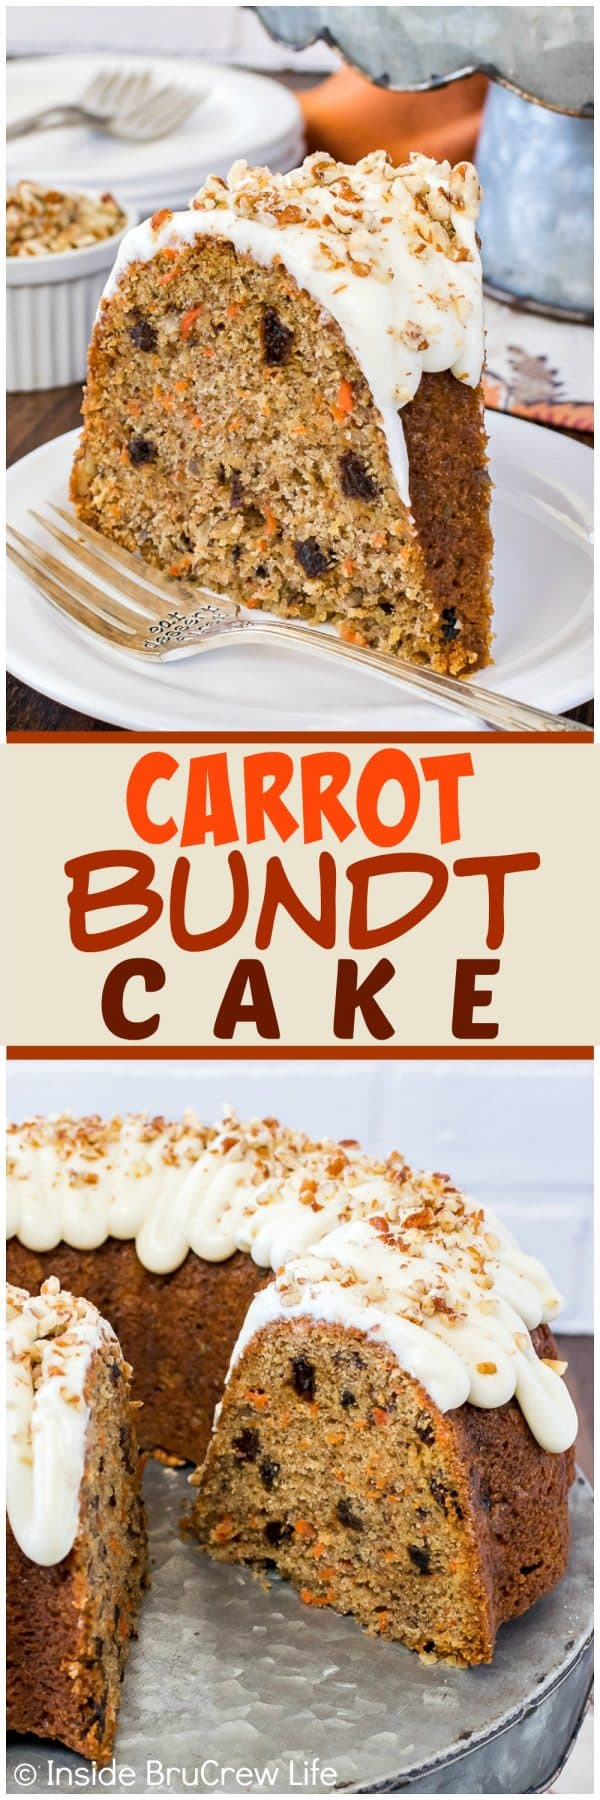 Carrot Bundt Cake - this easy homemade spice cake is loaded with carrots, nuts, and raisins. A swirl of frosting on top makes it a pretty recipe for Easter parties and dinners!